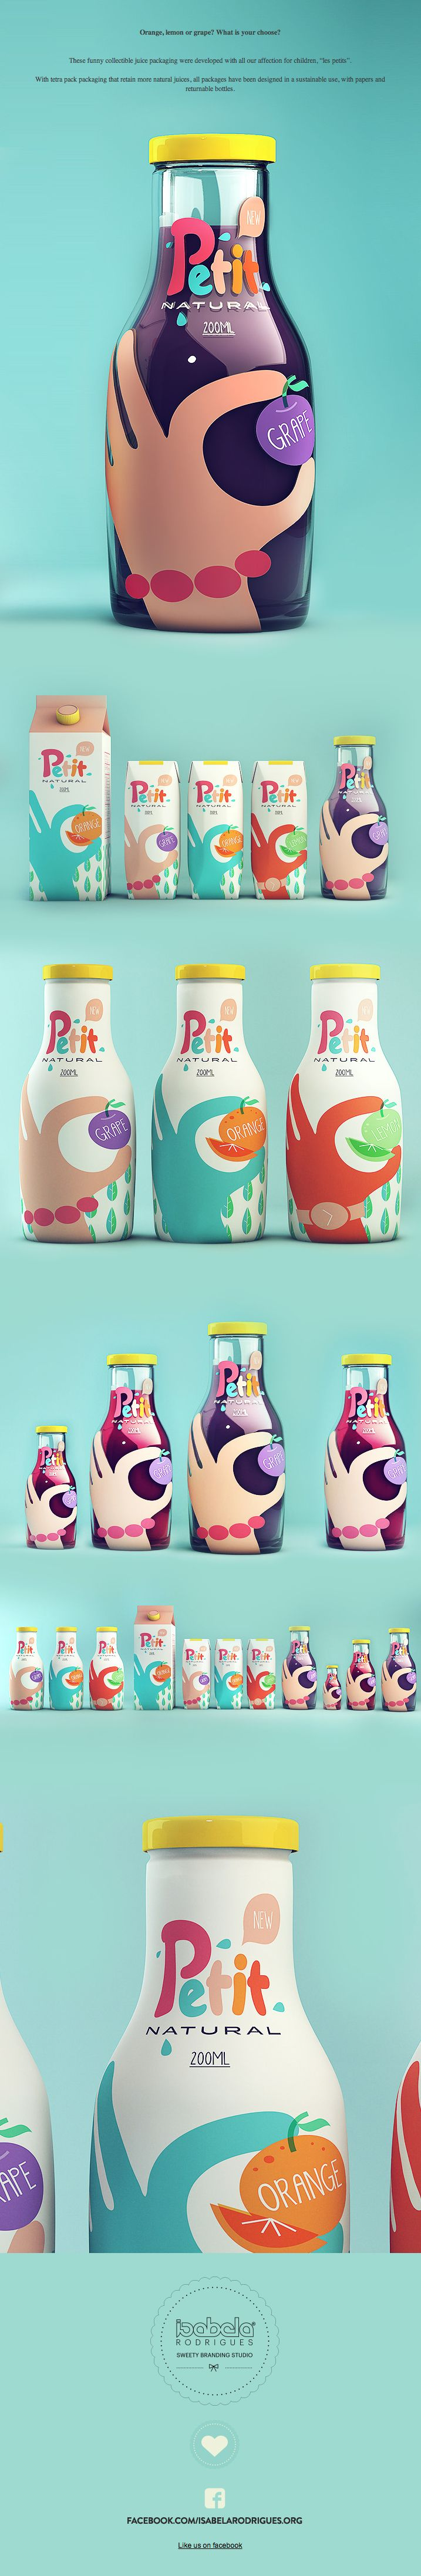 Petit - Natural Juice by Isabela Rodrigues, via Behance ***  #package #behance